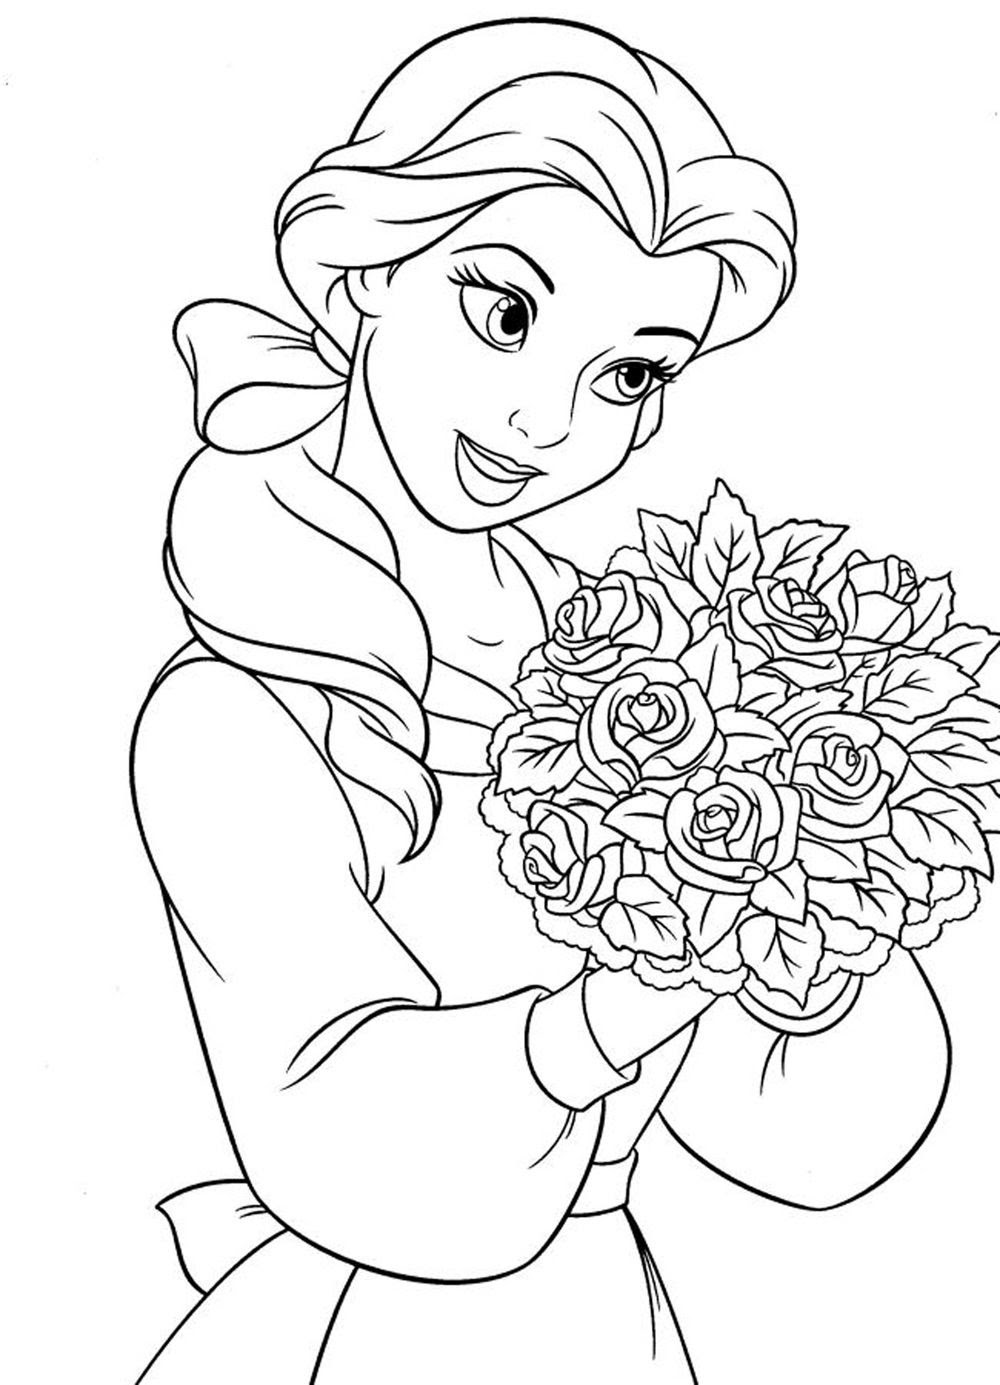 Detailed Coloring Pages For Girls at GetColorings.com ...